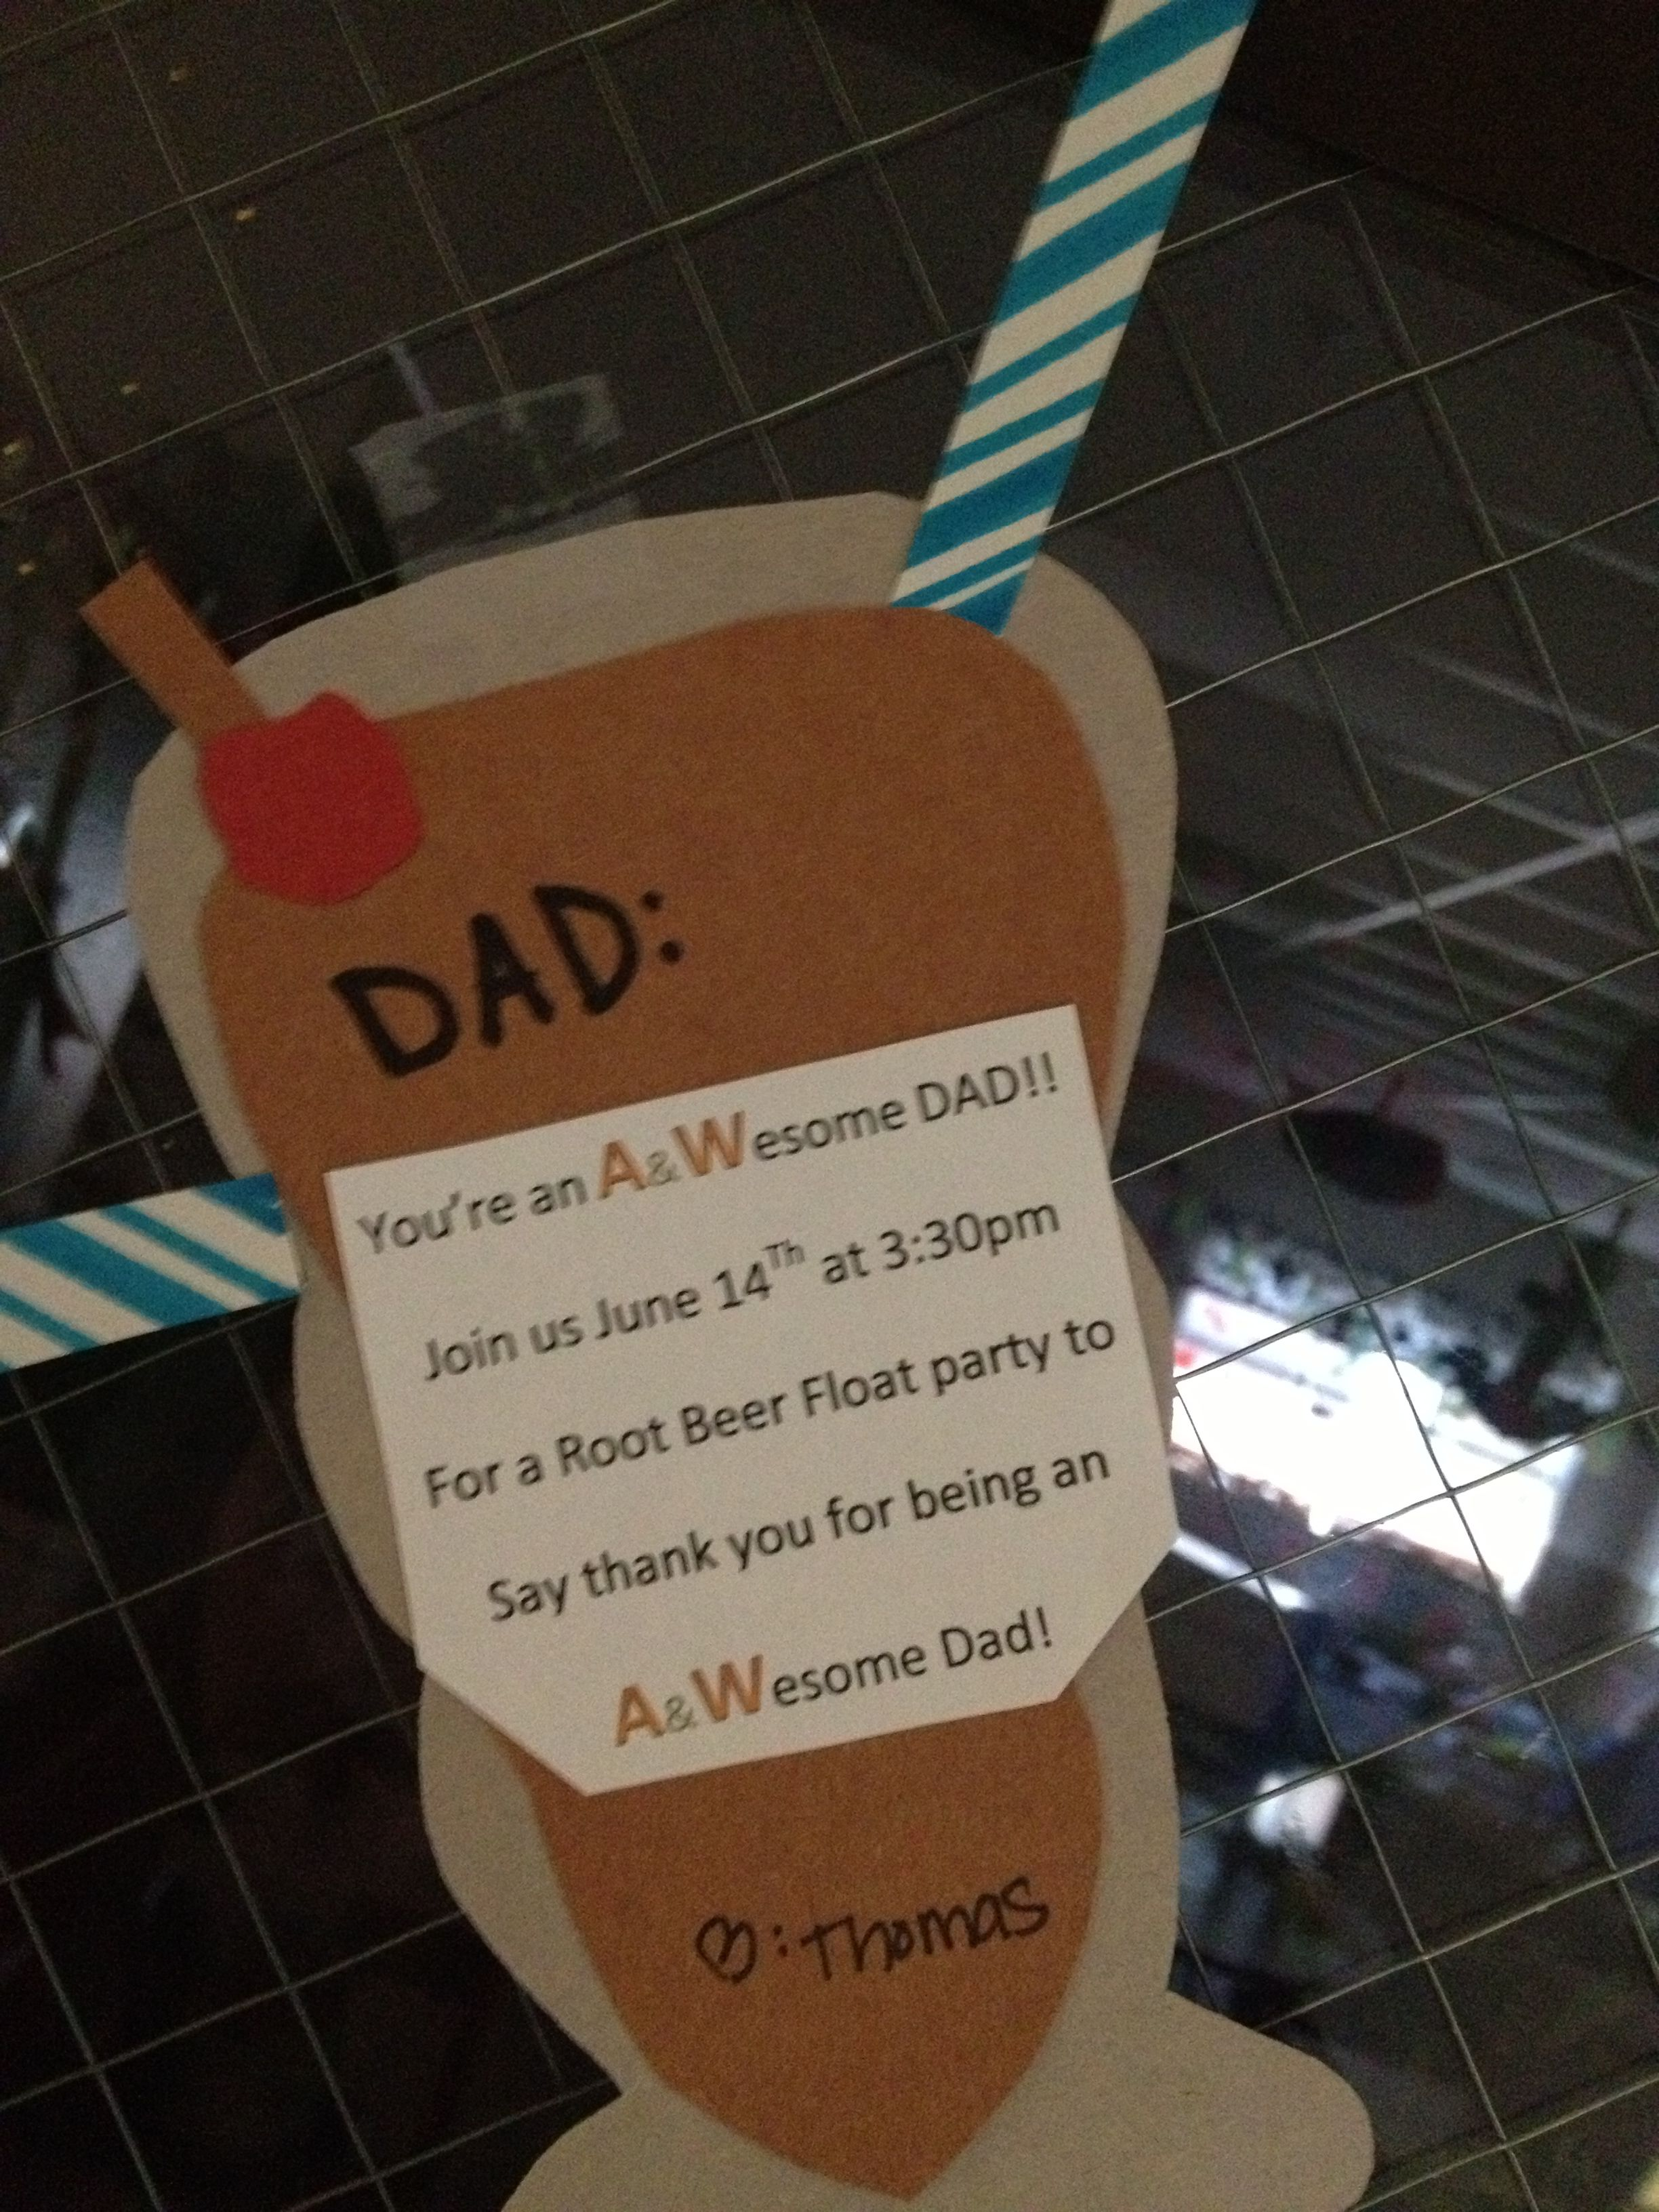 Root Beer Float Invite For Fathers Day